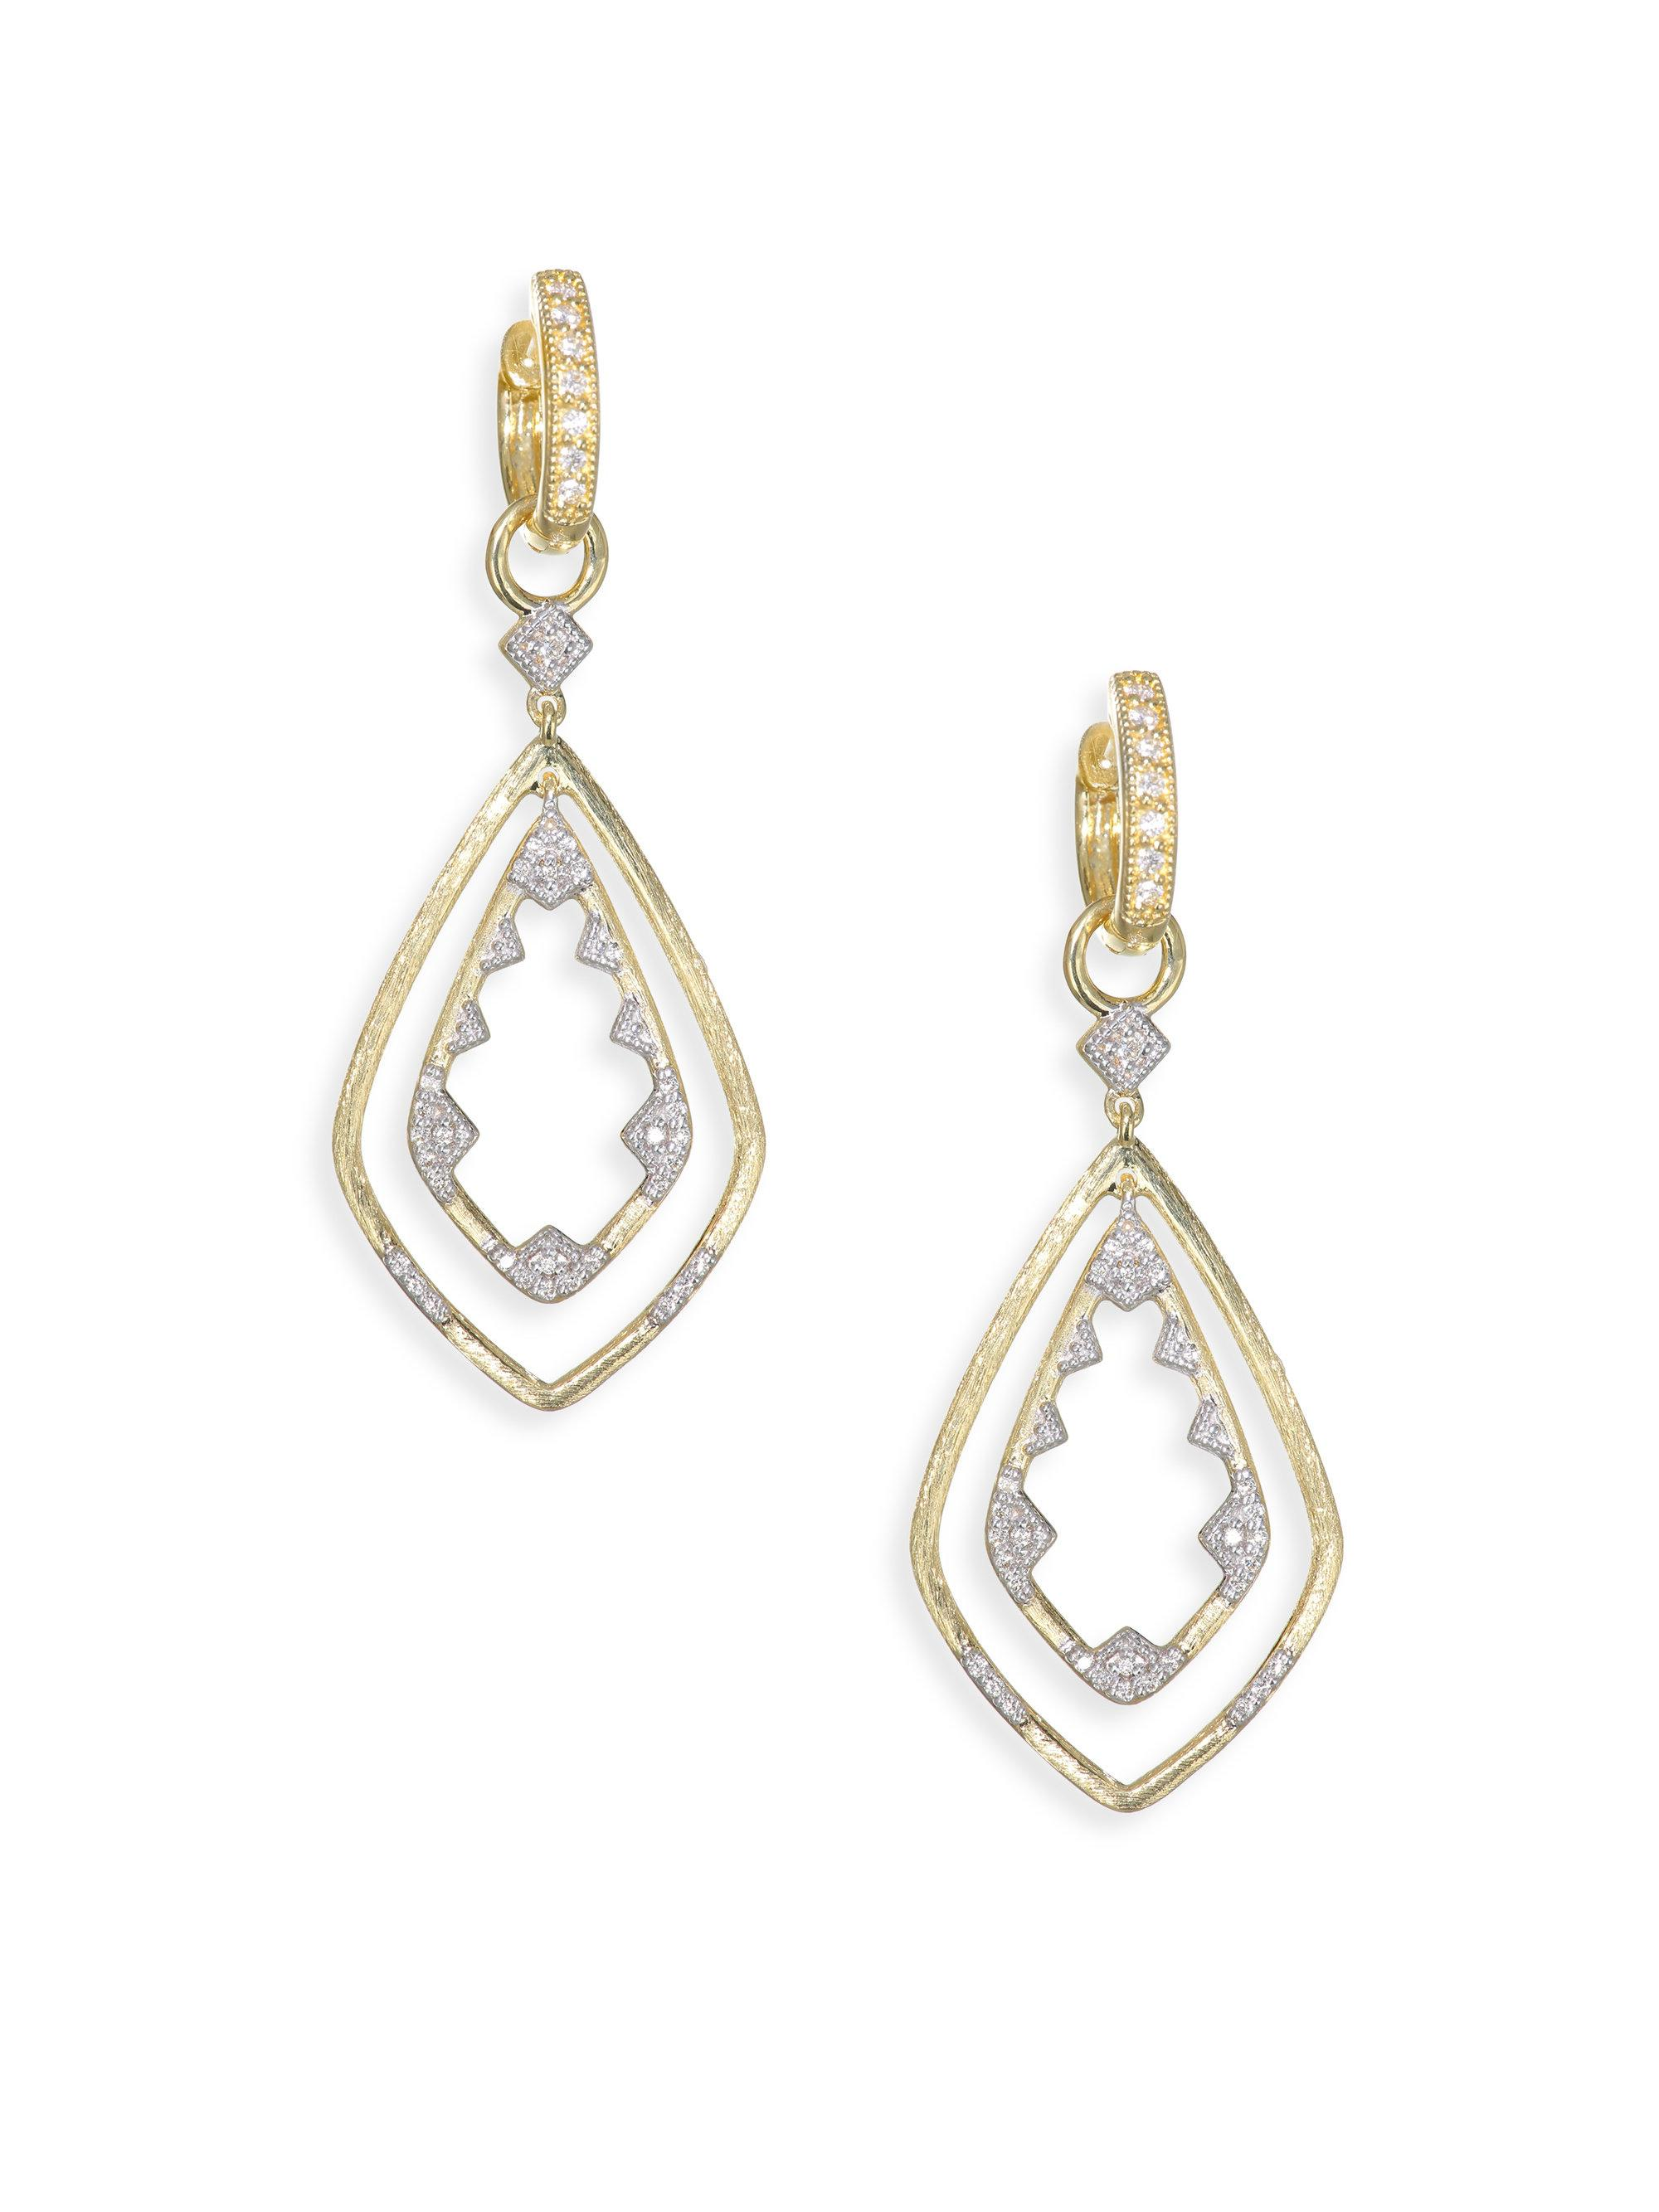 Jude Frances 18k Lisse Round Kite Earring Charms, Pink Triplet